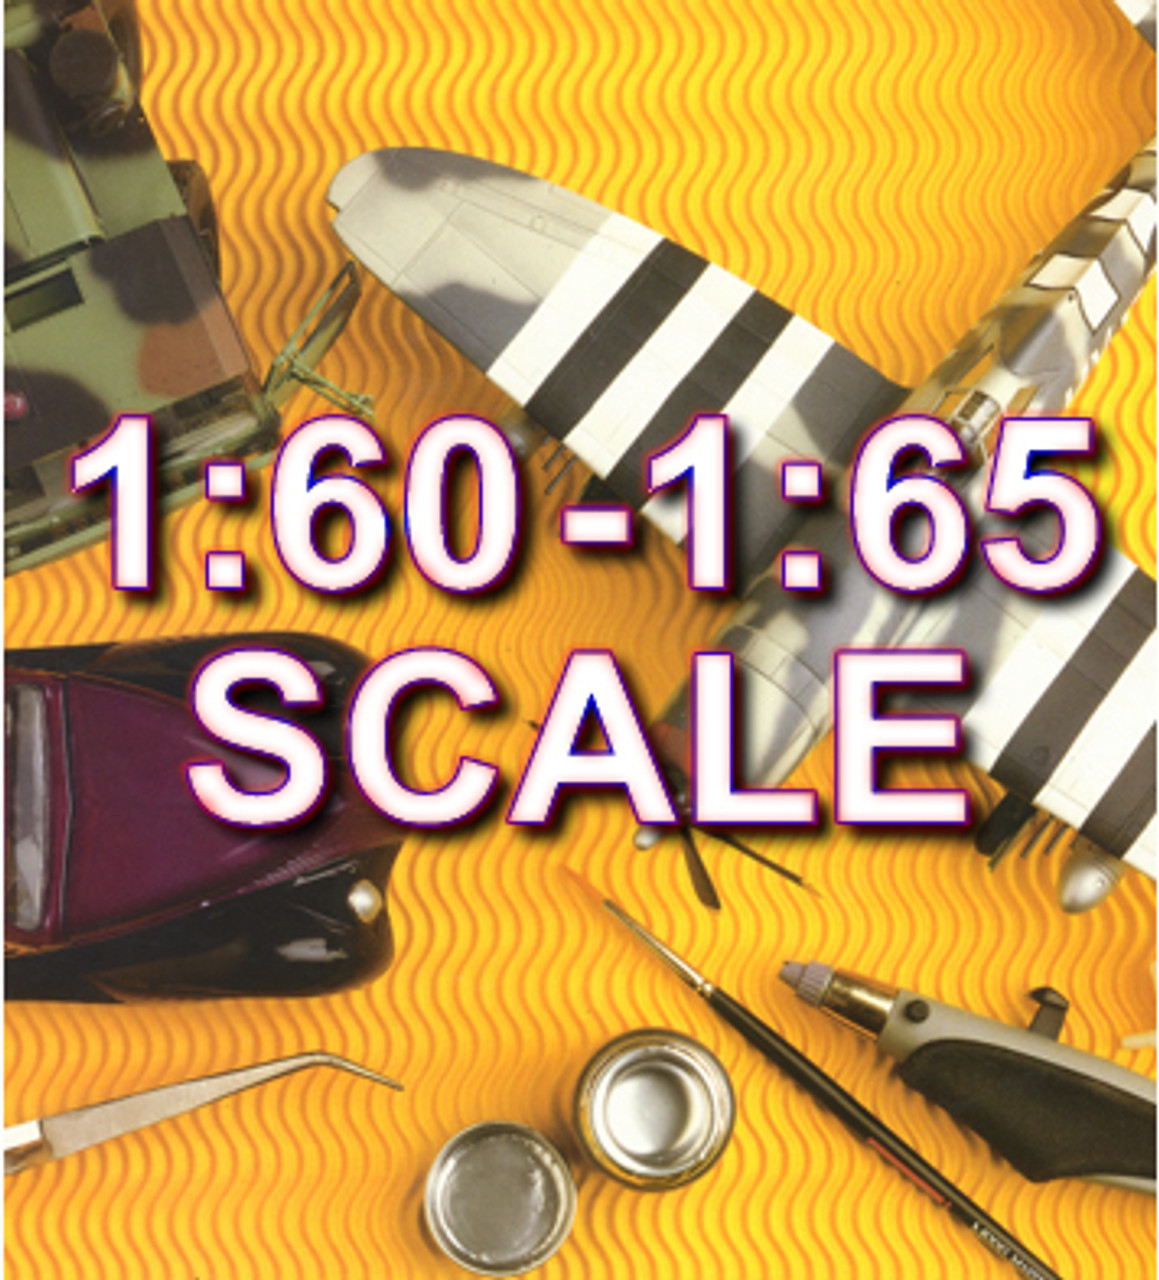 1:60 to 1:65 Scale Model Kits